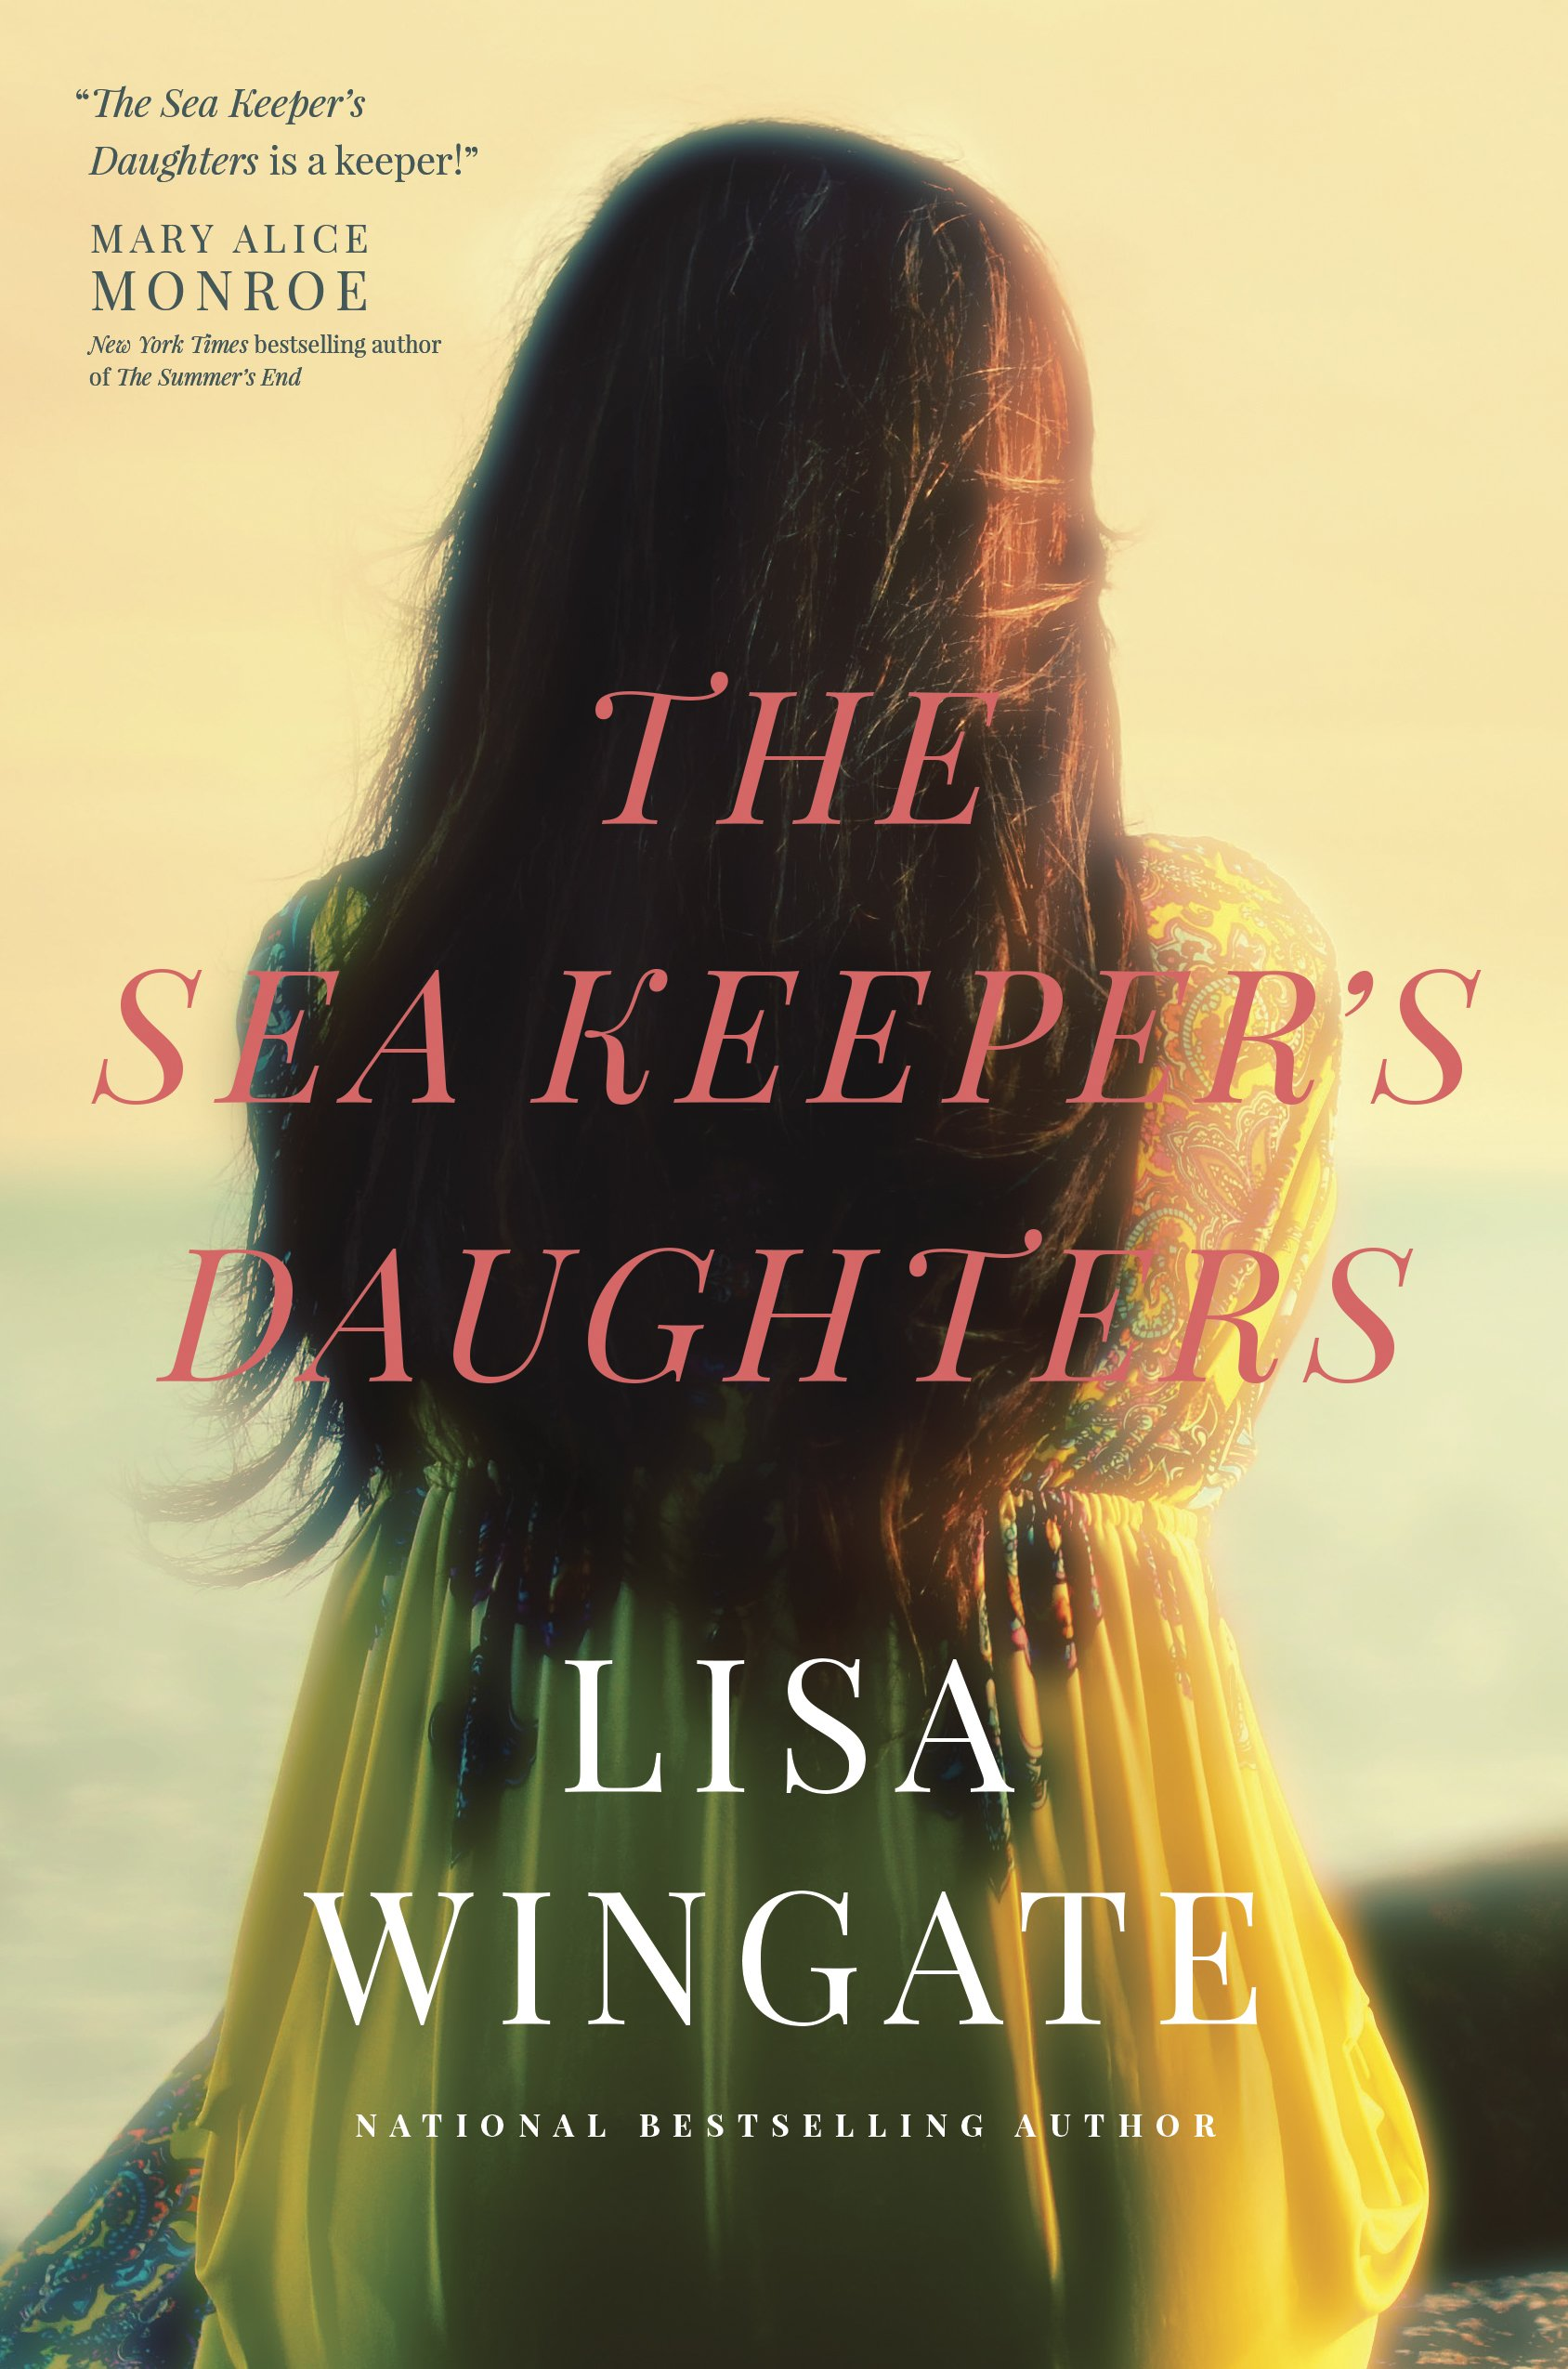 The Sea Keeper's Daughters, book review